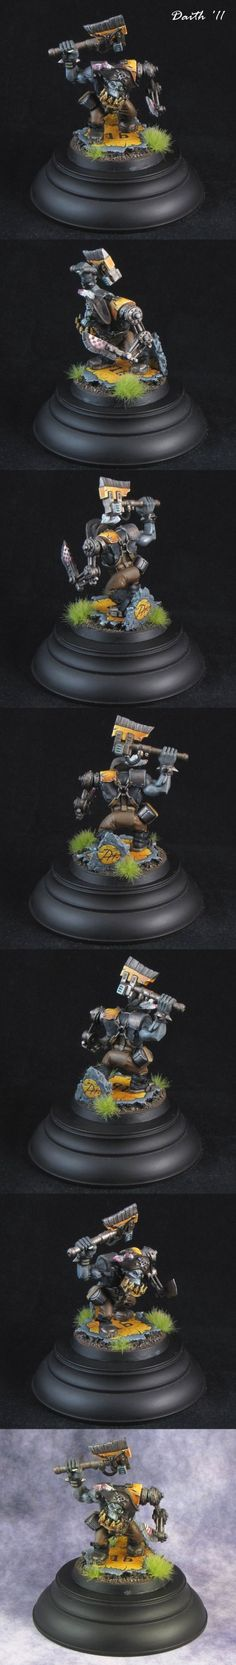 Ork Freebooter Captain by Daith